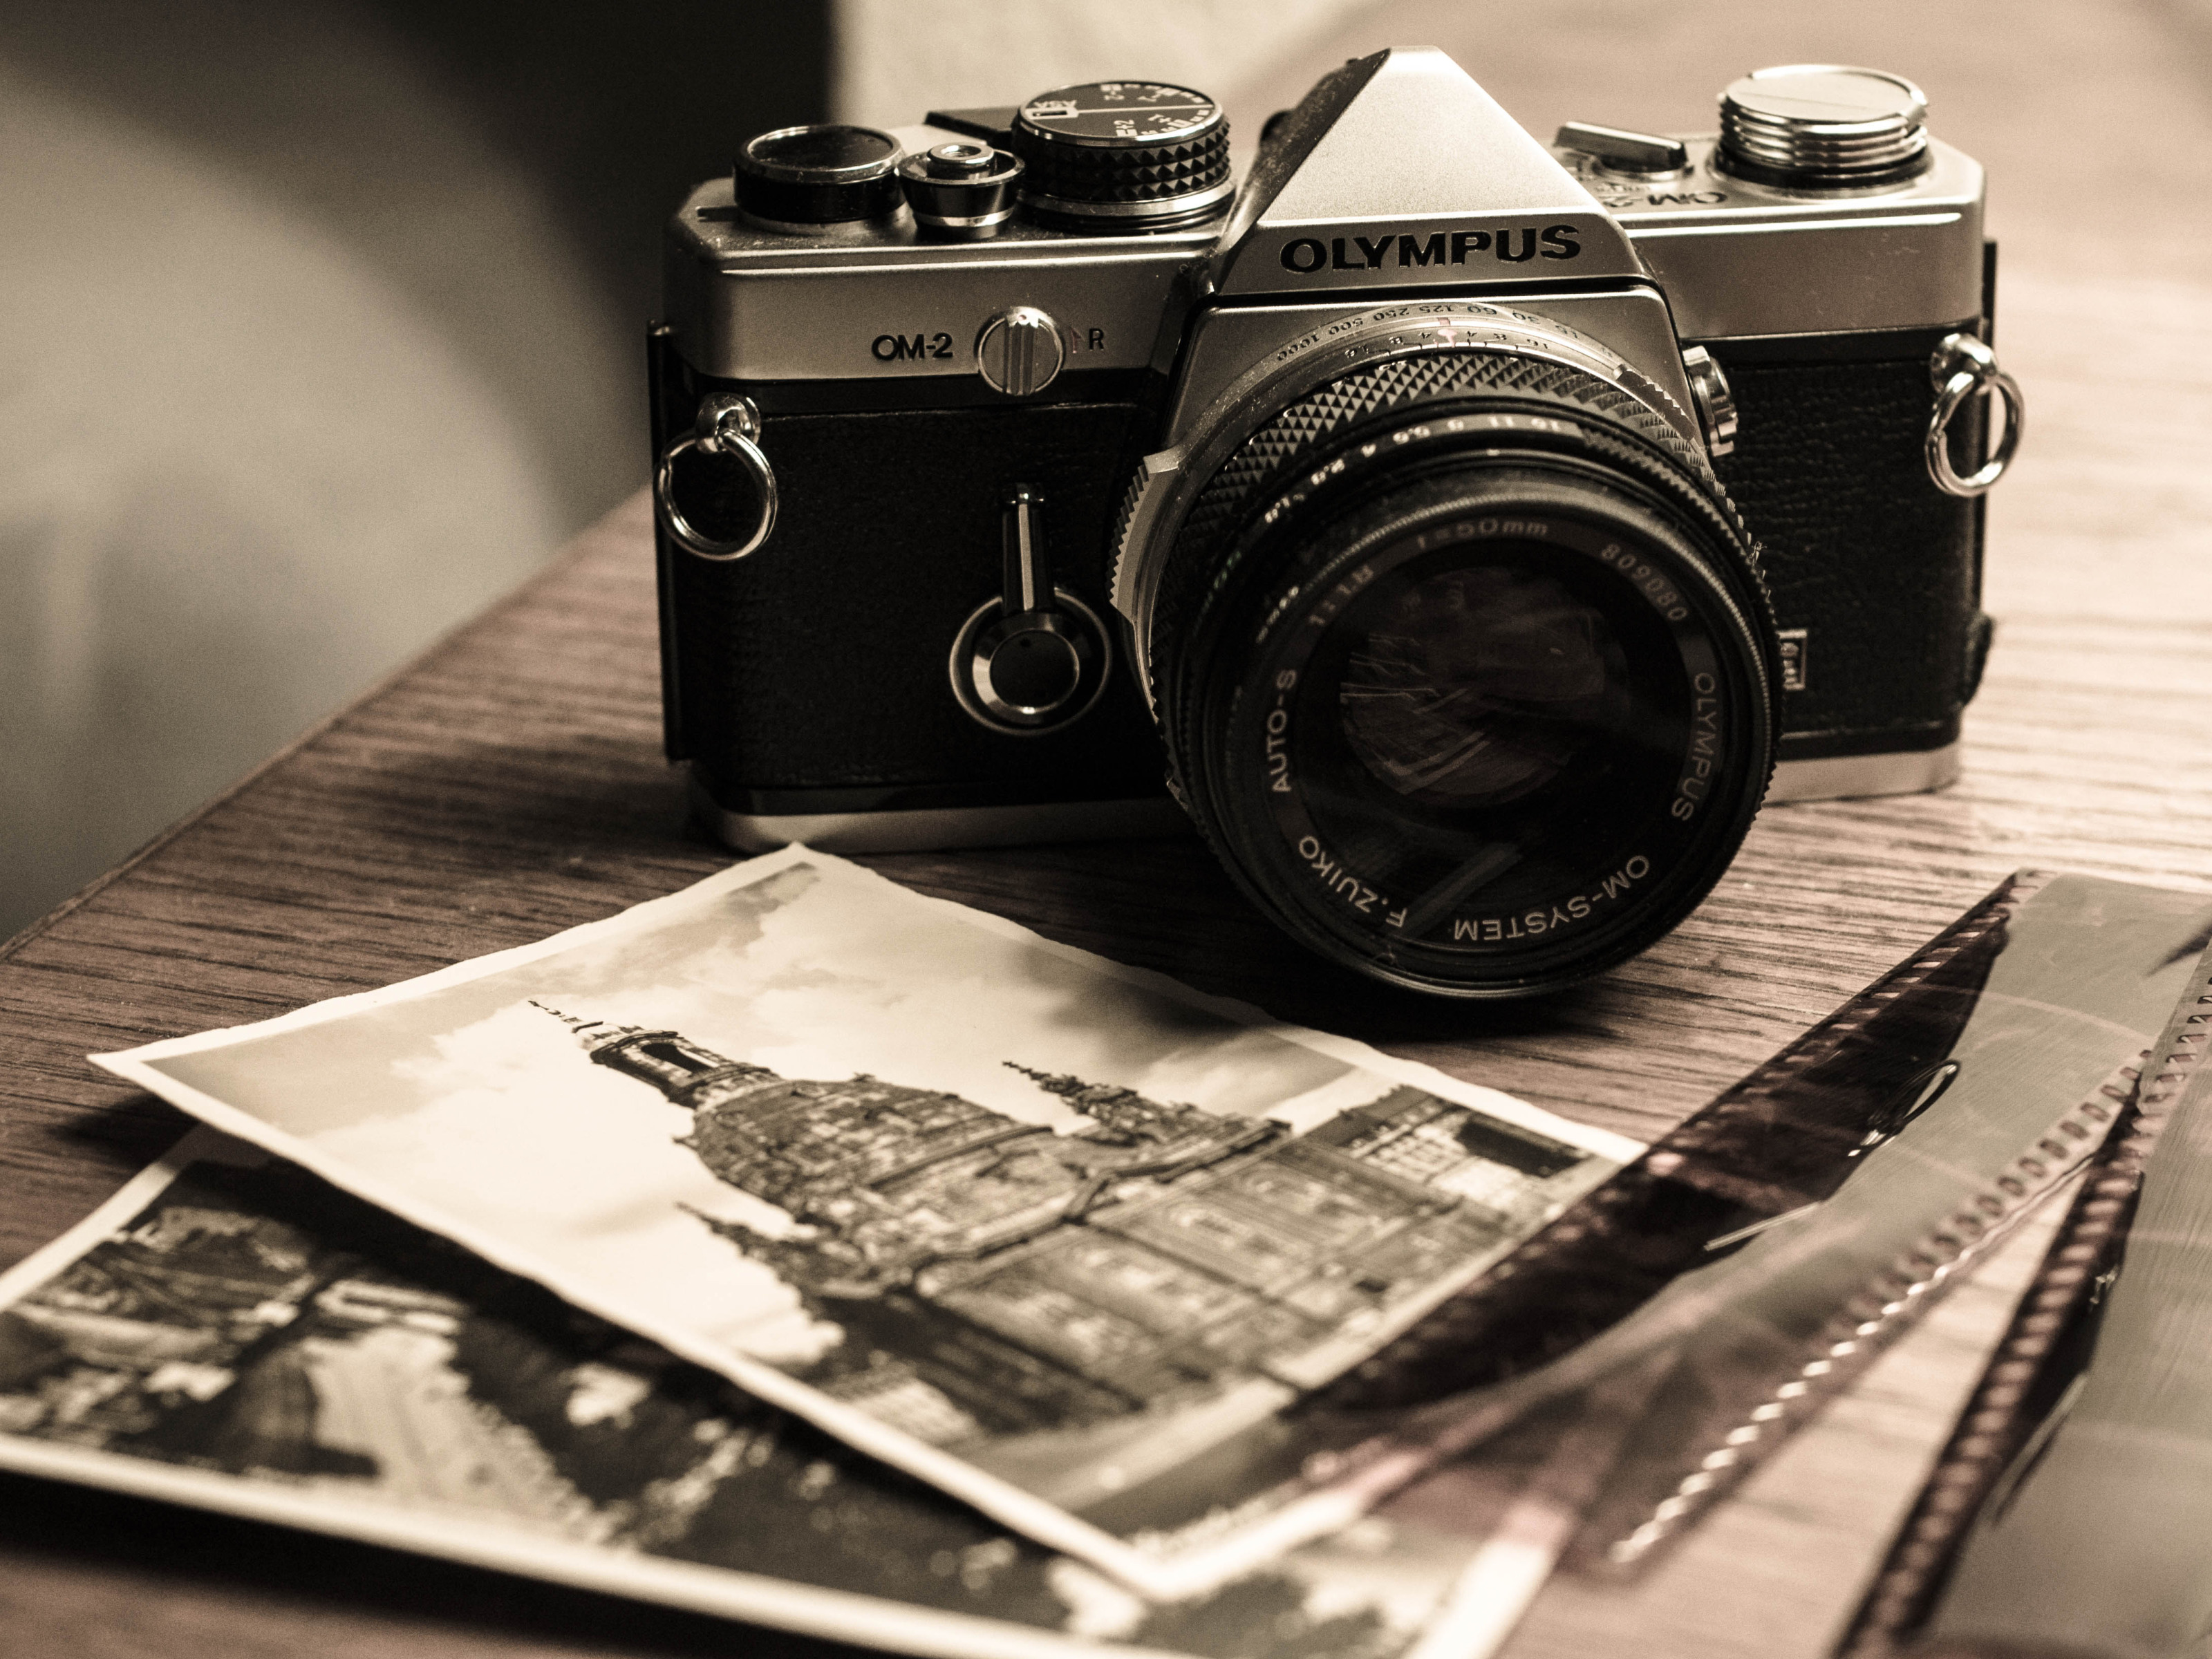 Vintage Olympus OM 2 Camera and Photographs widescreen wallpaper 3200x2400